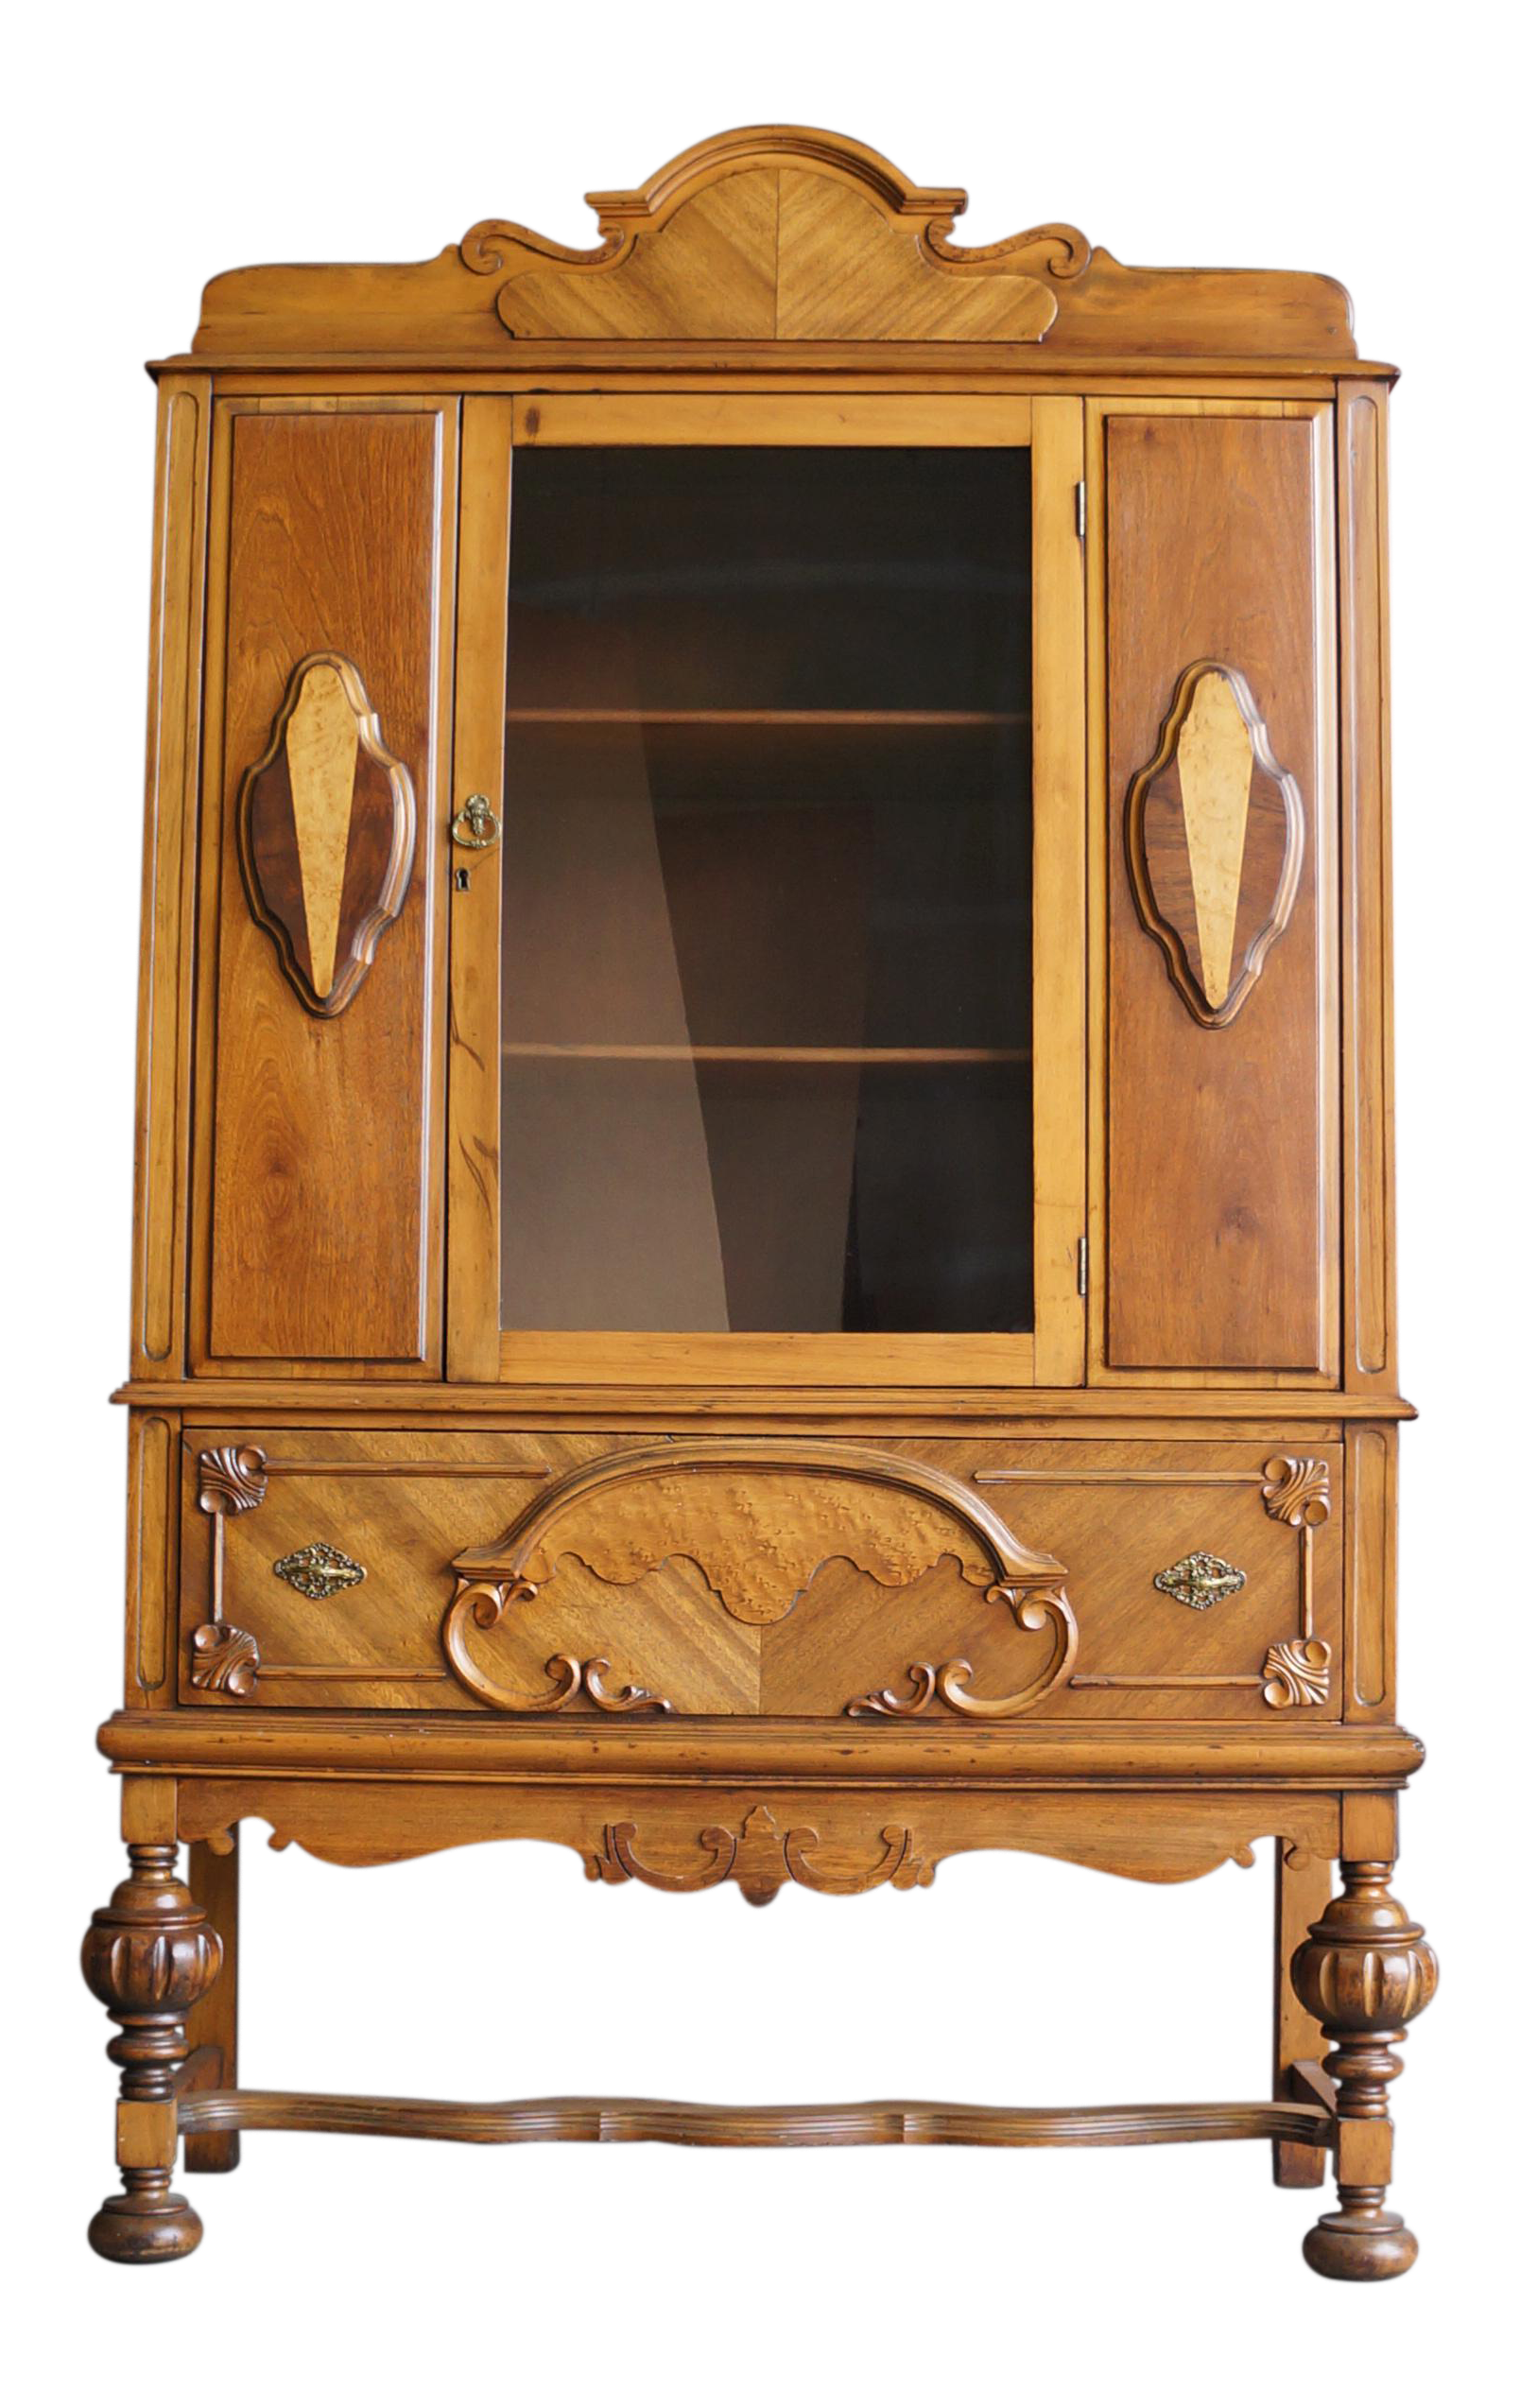 wood glass catalog china aptdeco frame curved oak display antique cabinet